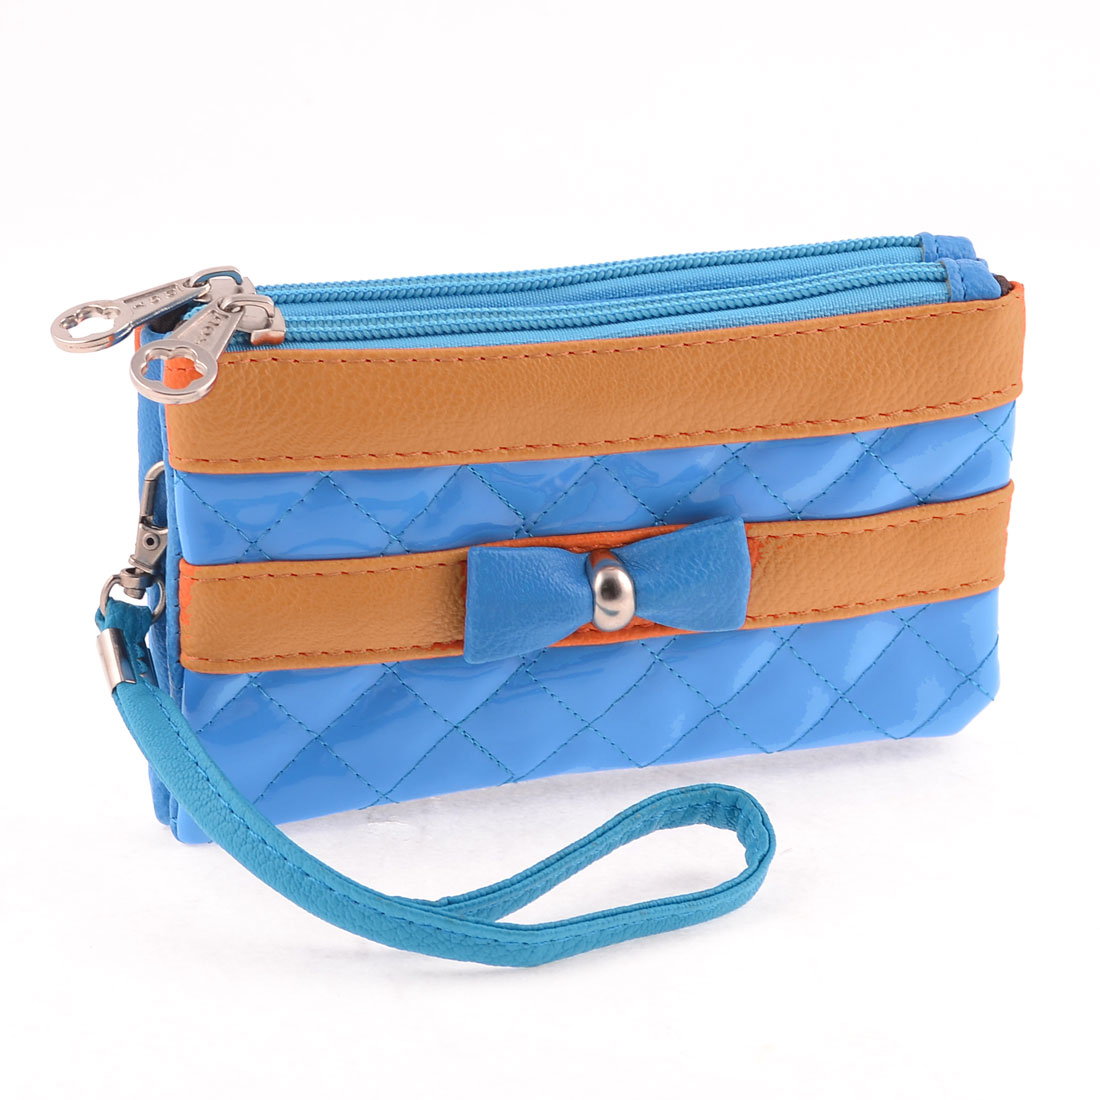 Laides Faux Leather 2 Compartments Zipper Closure Wallet Purse Blue Orange